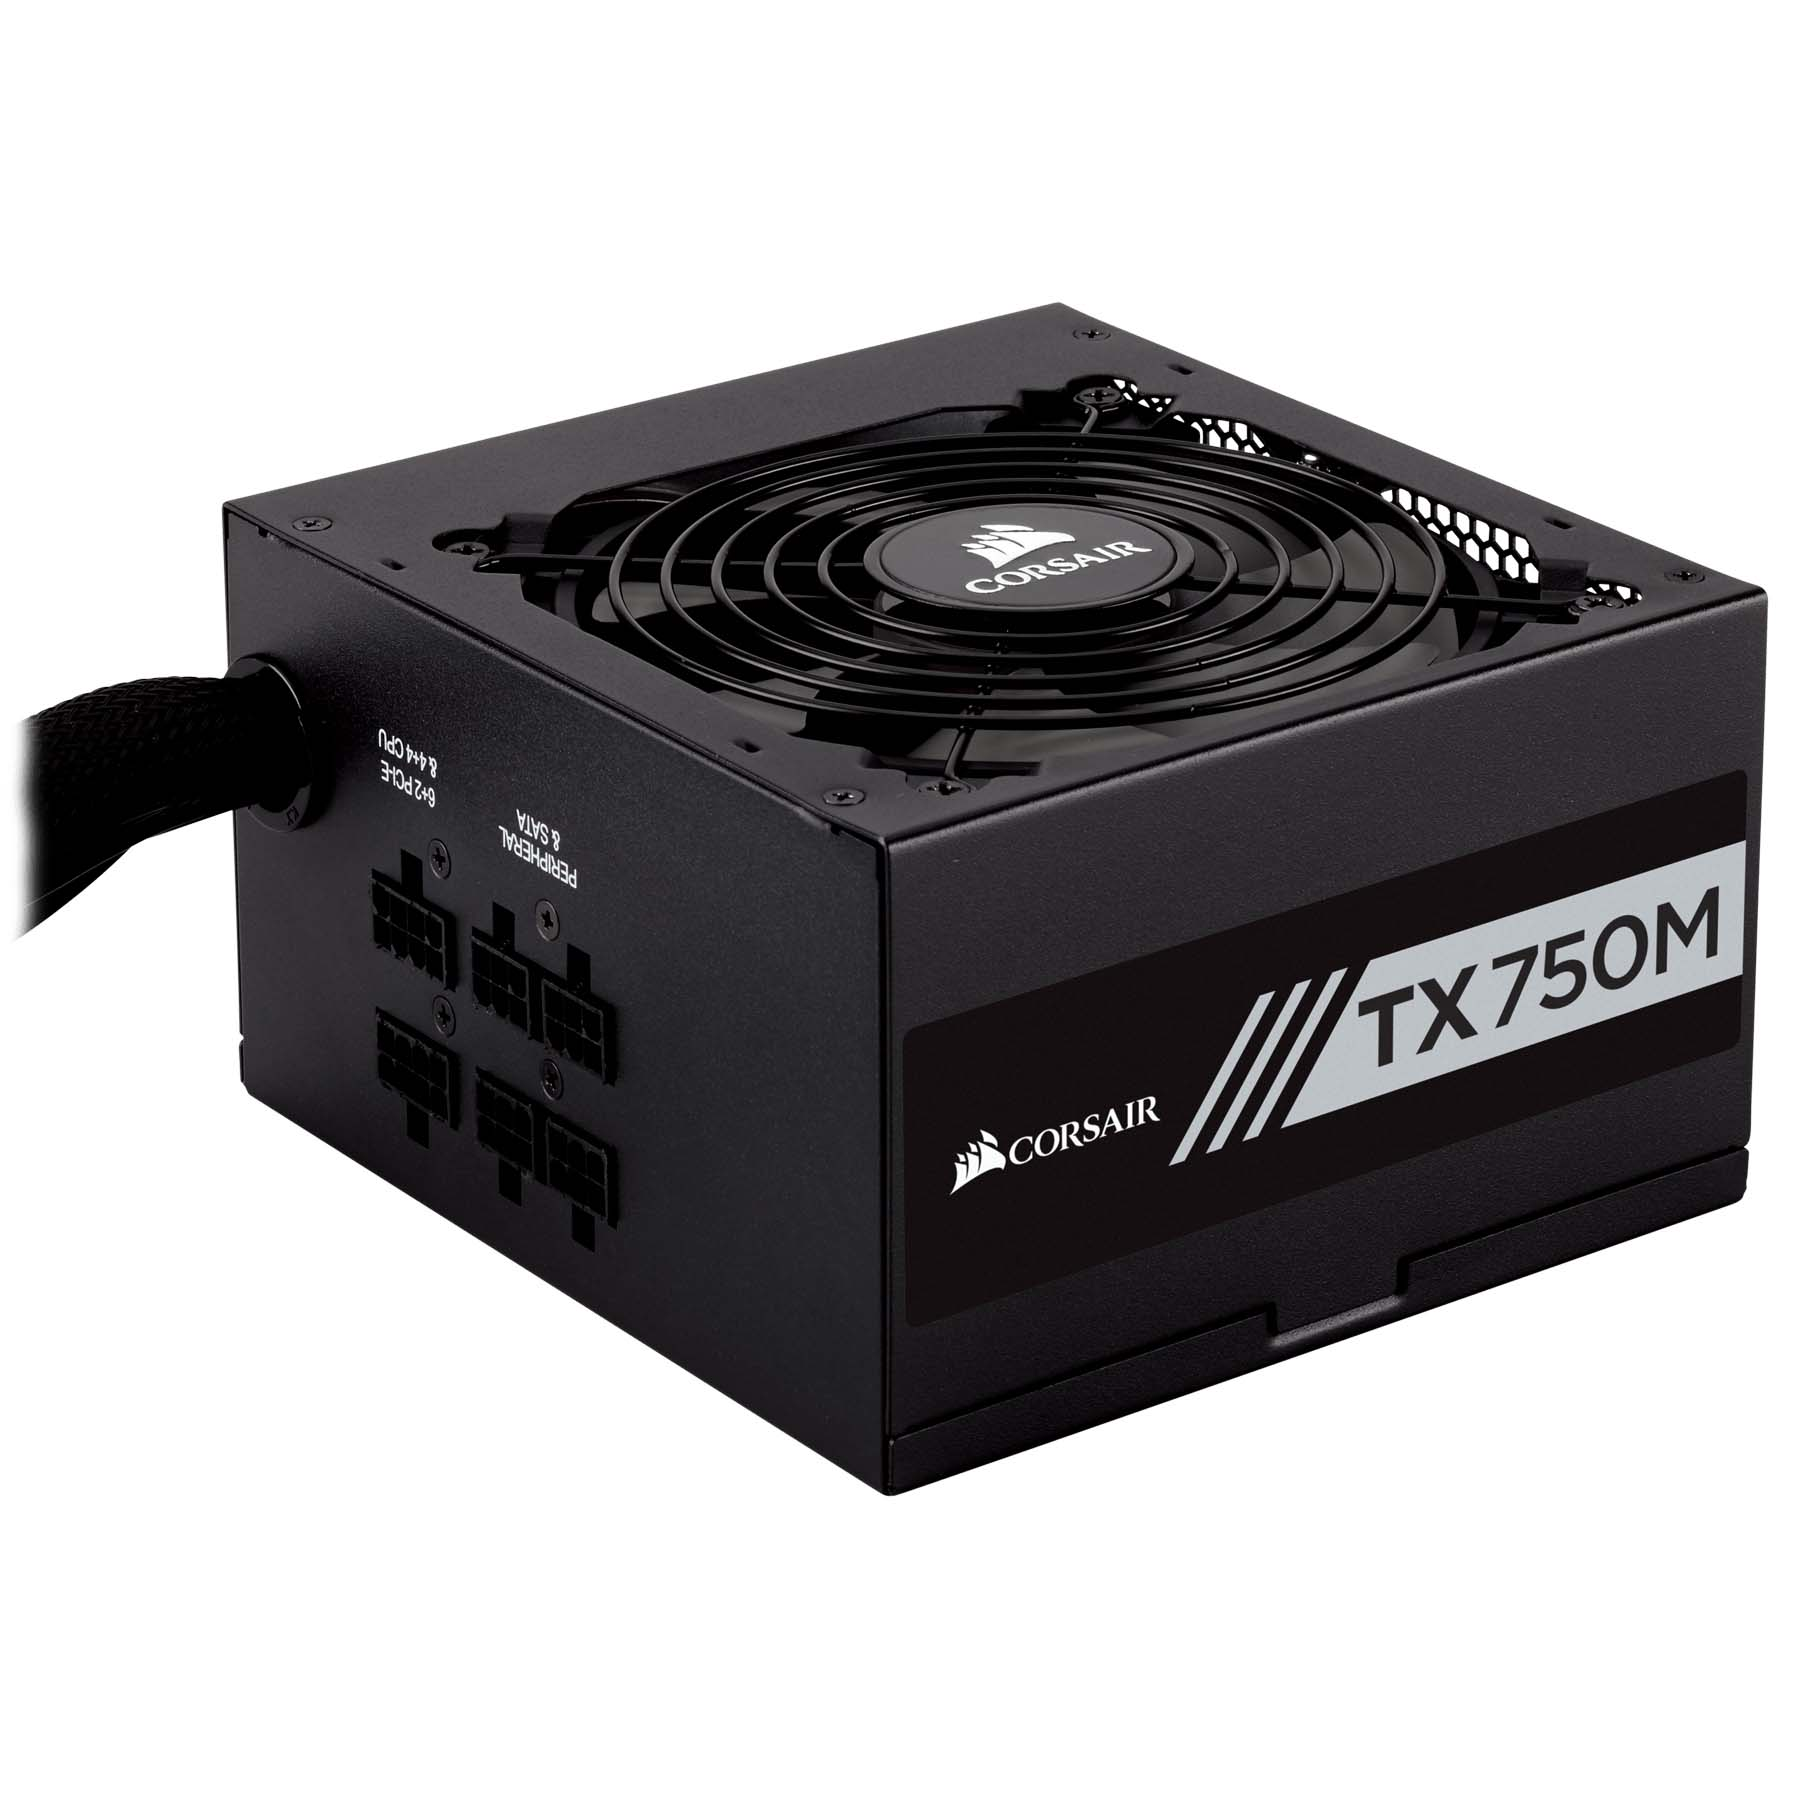 POWER SUPPLY CORSAIR TX750M-750 WATT 80 PLUS GOLD 24PIN LGA PSU ,Case & Power Supply